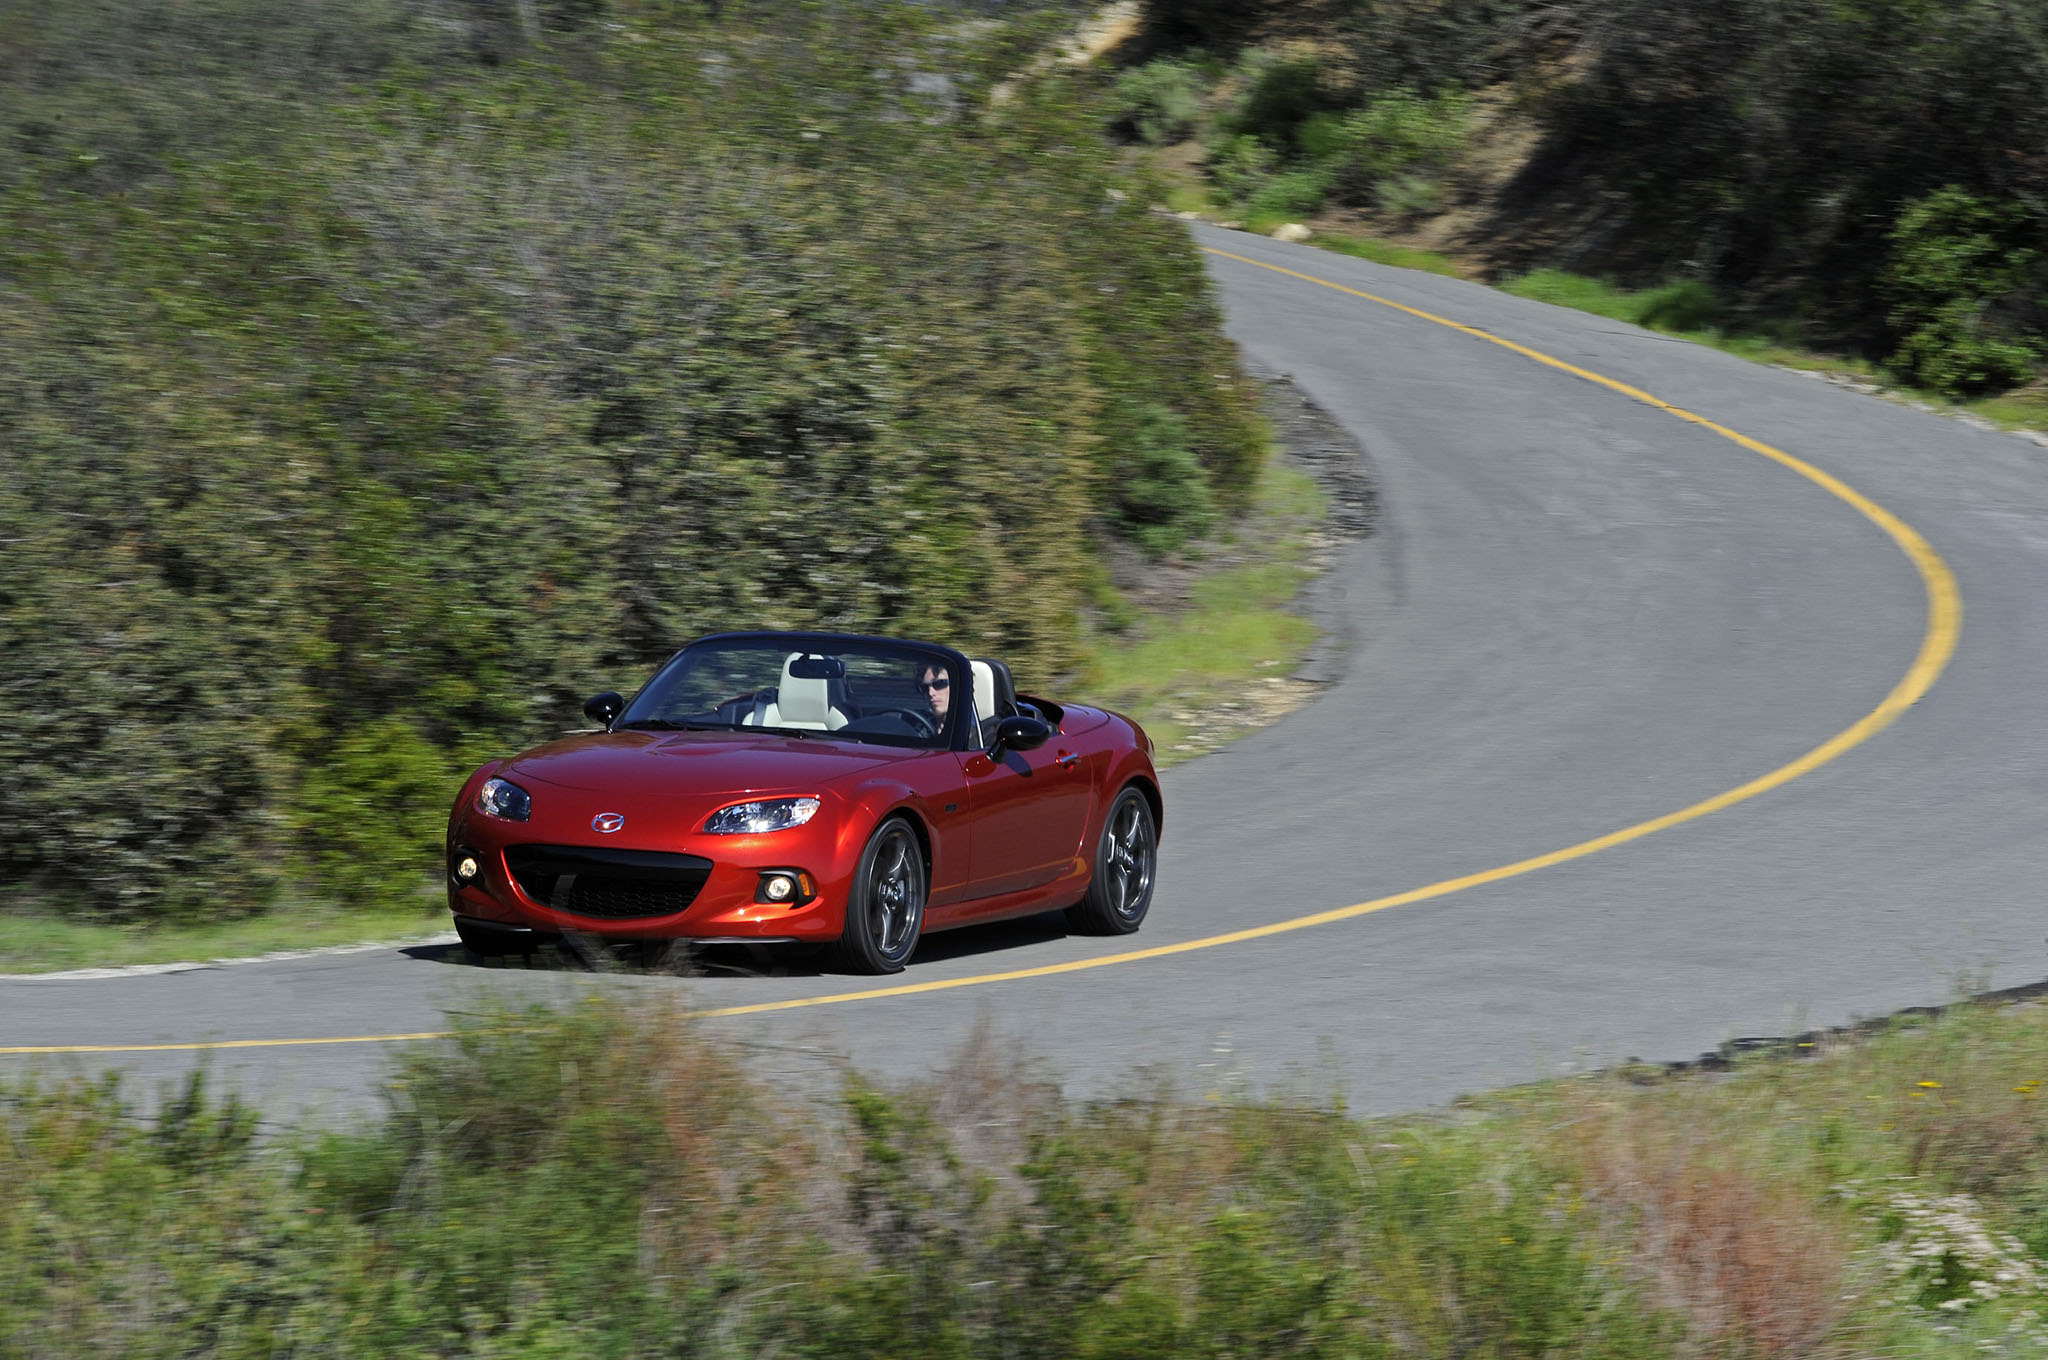 https://st.automobilemag.com/uploads/sites/11/2014/05/2015-mazda-miata-25th-anniversary-edition-22-front-three-quarter-in-motion.jpg